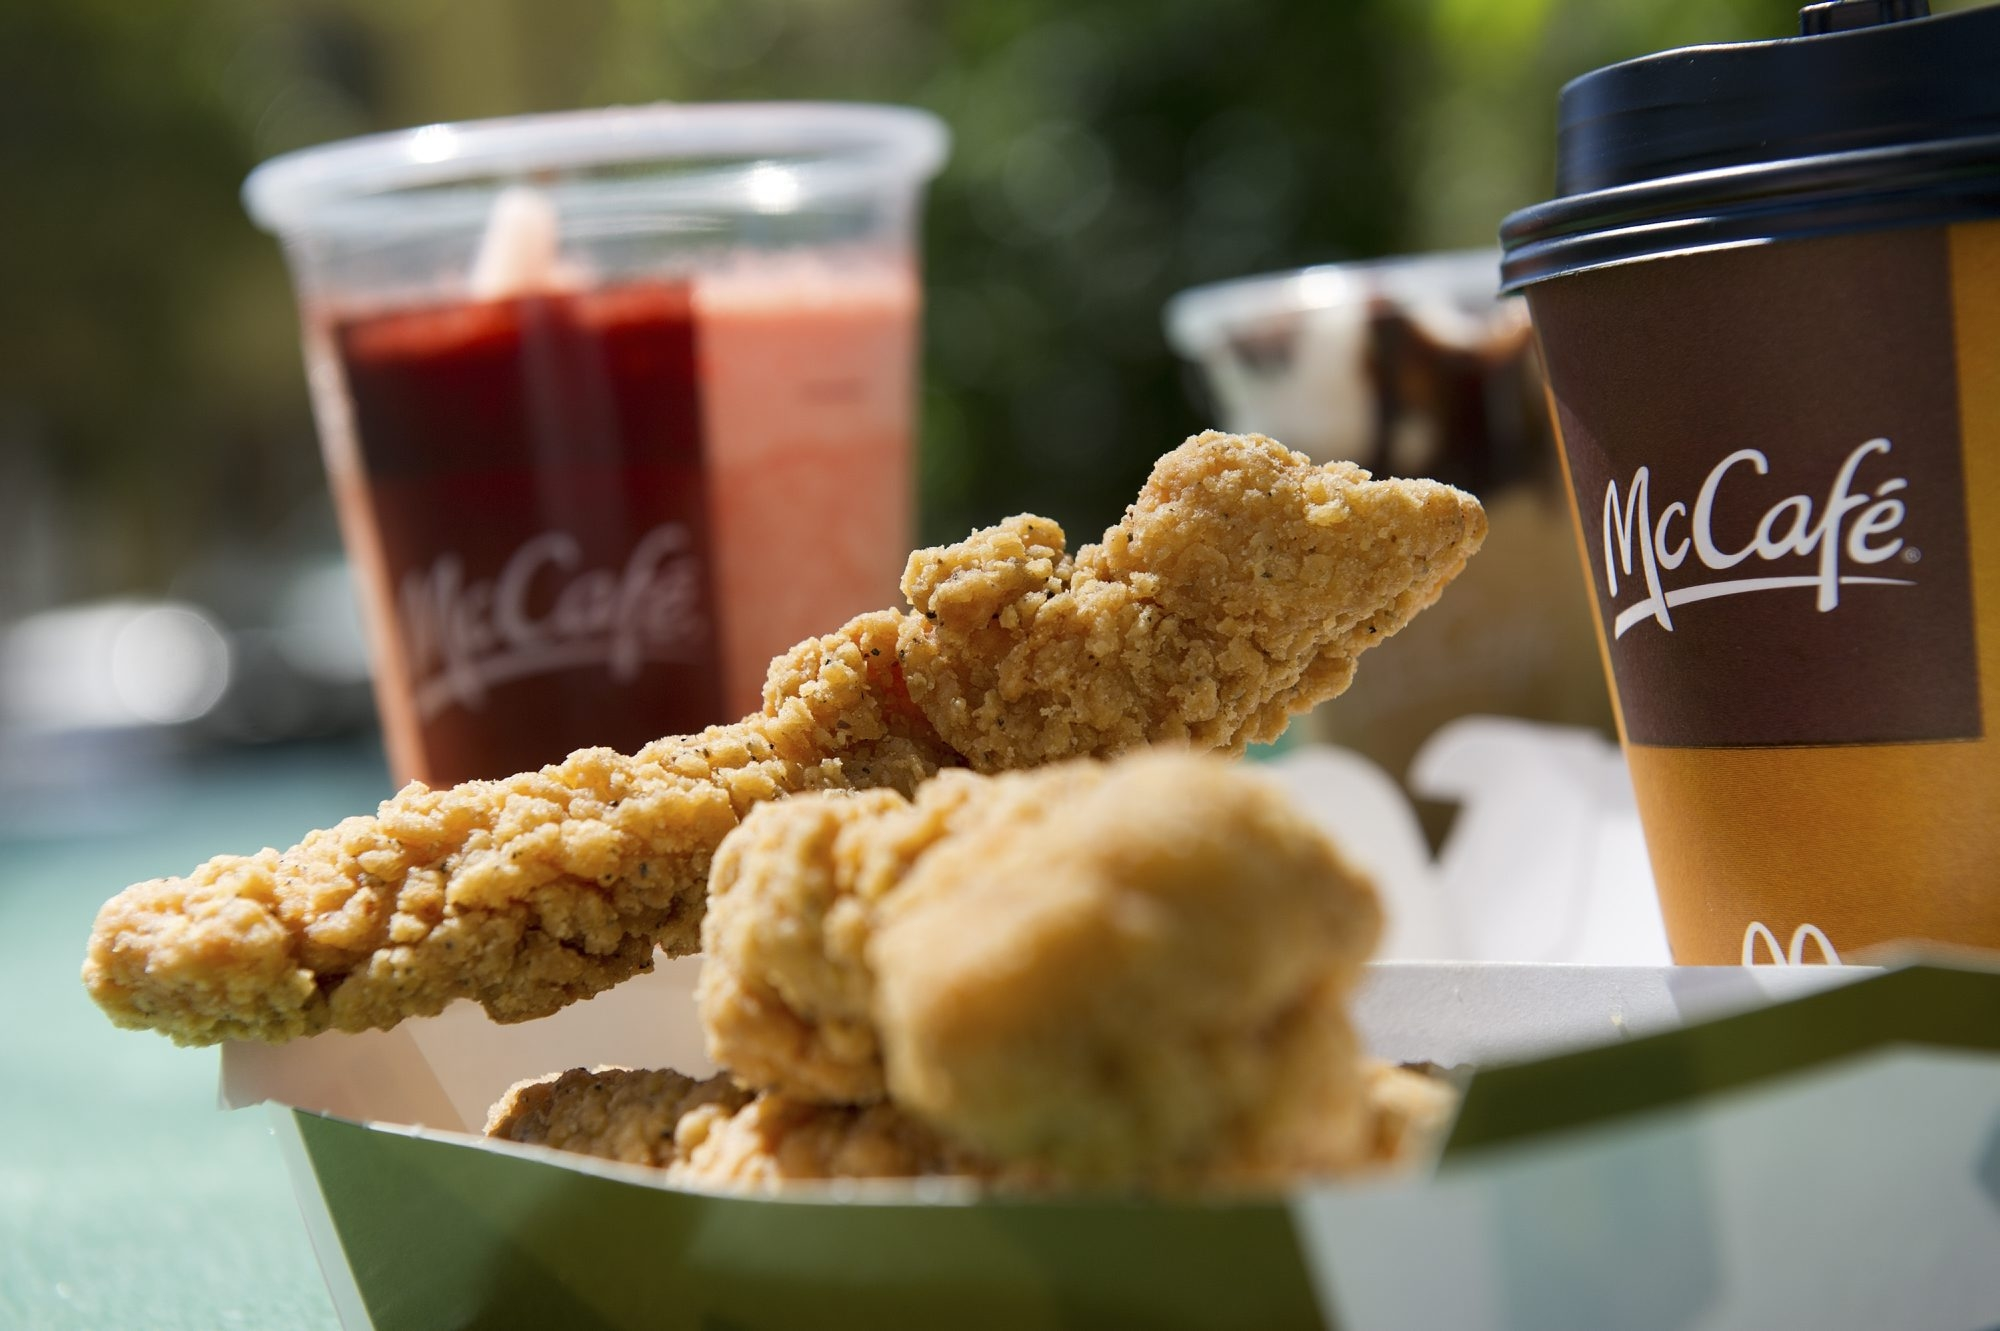 McDonald's, which also will sell low-fat milk and fat-free chocolate milk from cows not treated with an artificial growth hormone, wants to appeal to the health-conscious.